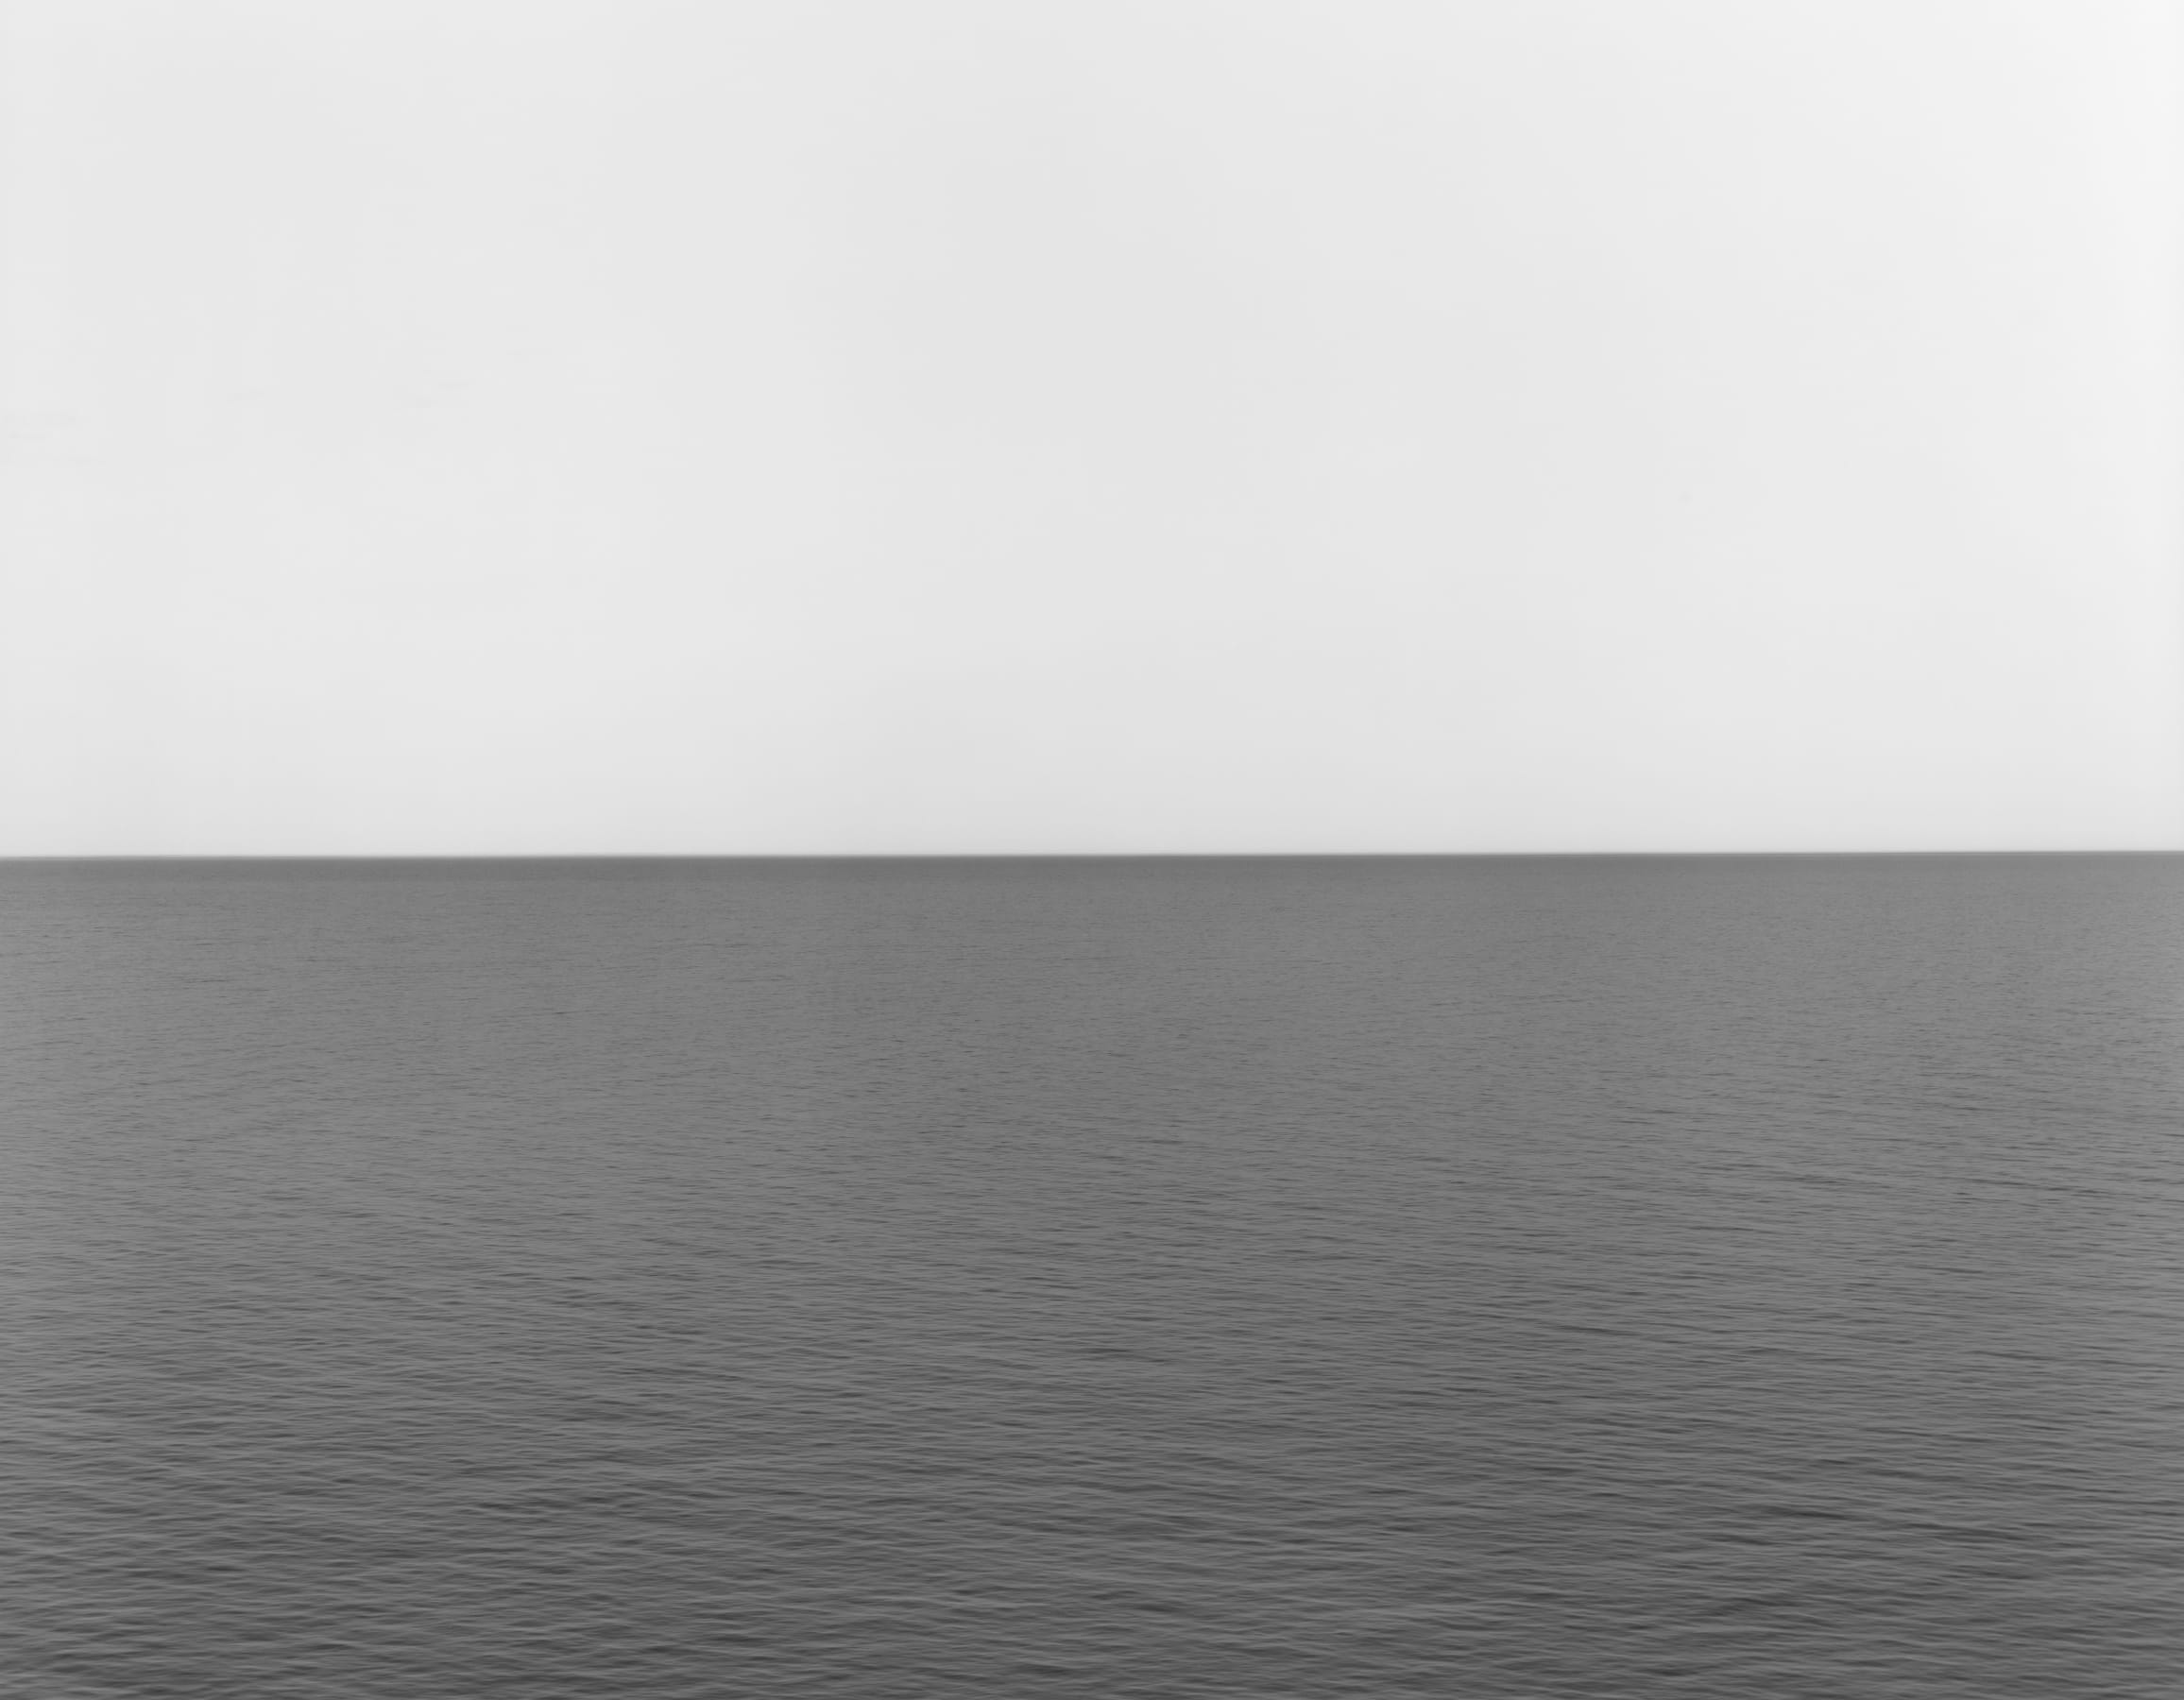 A horizon line equally divides the frame between a light gray sky and darker body of calm water.